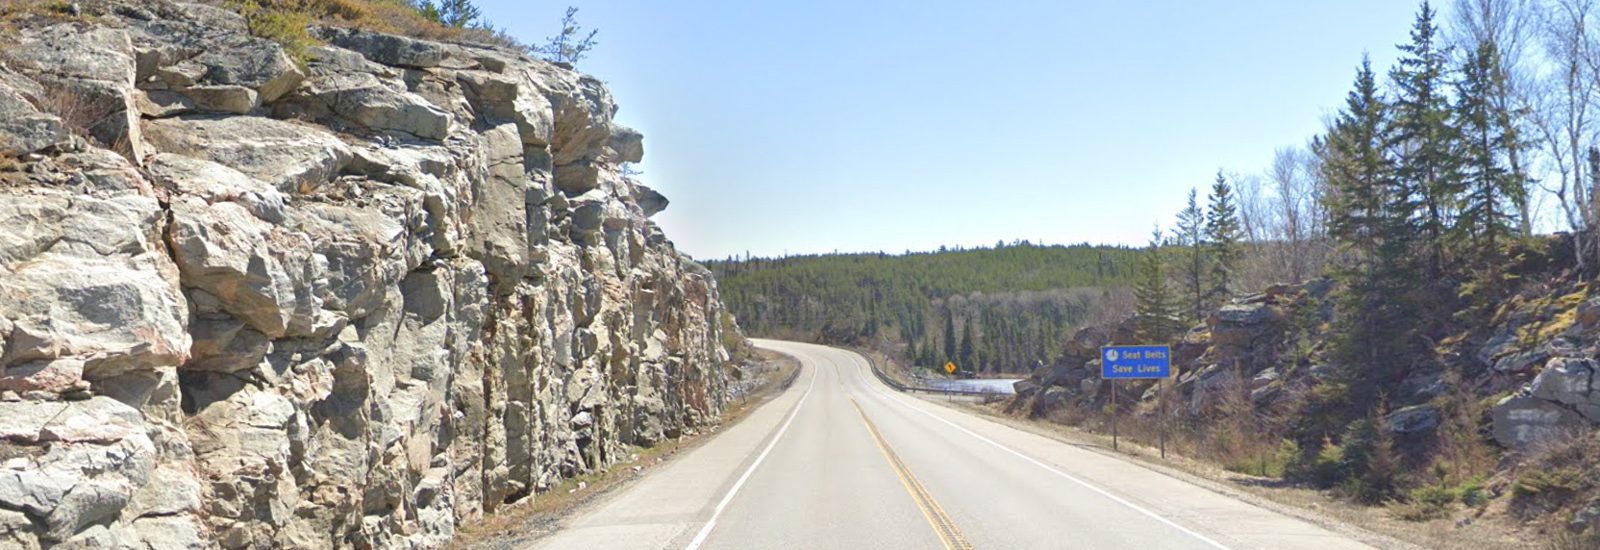 Rock cut on Highway 17 at Dogtooth Lake